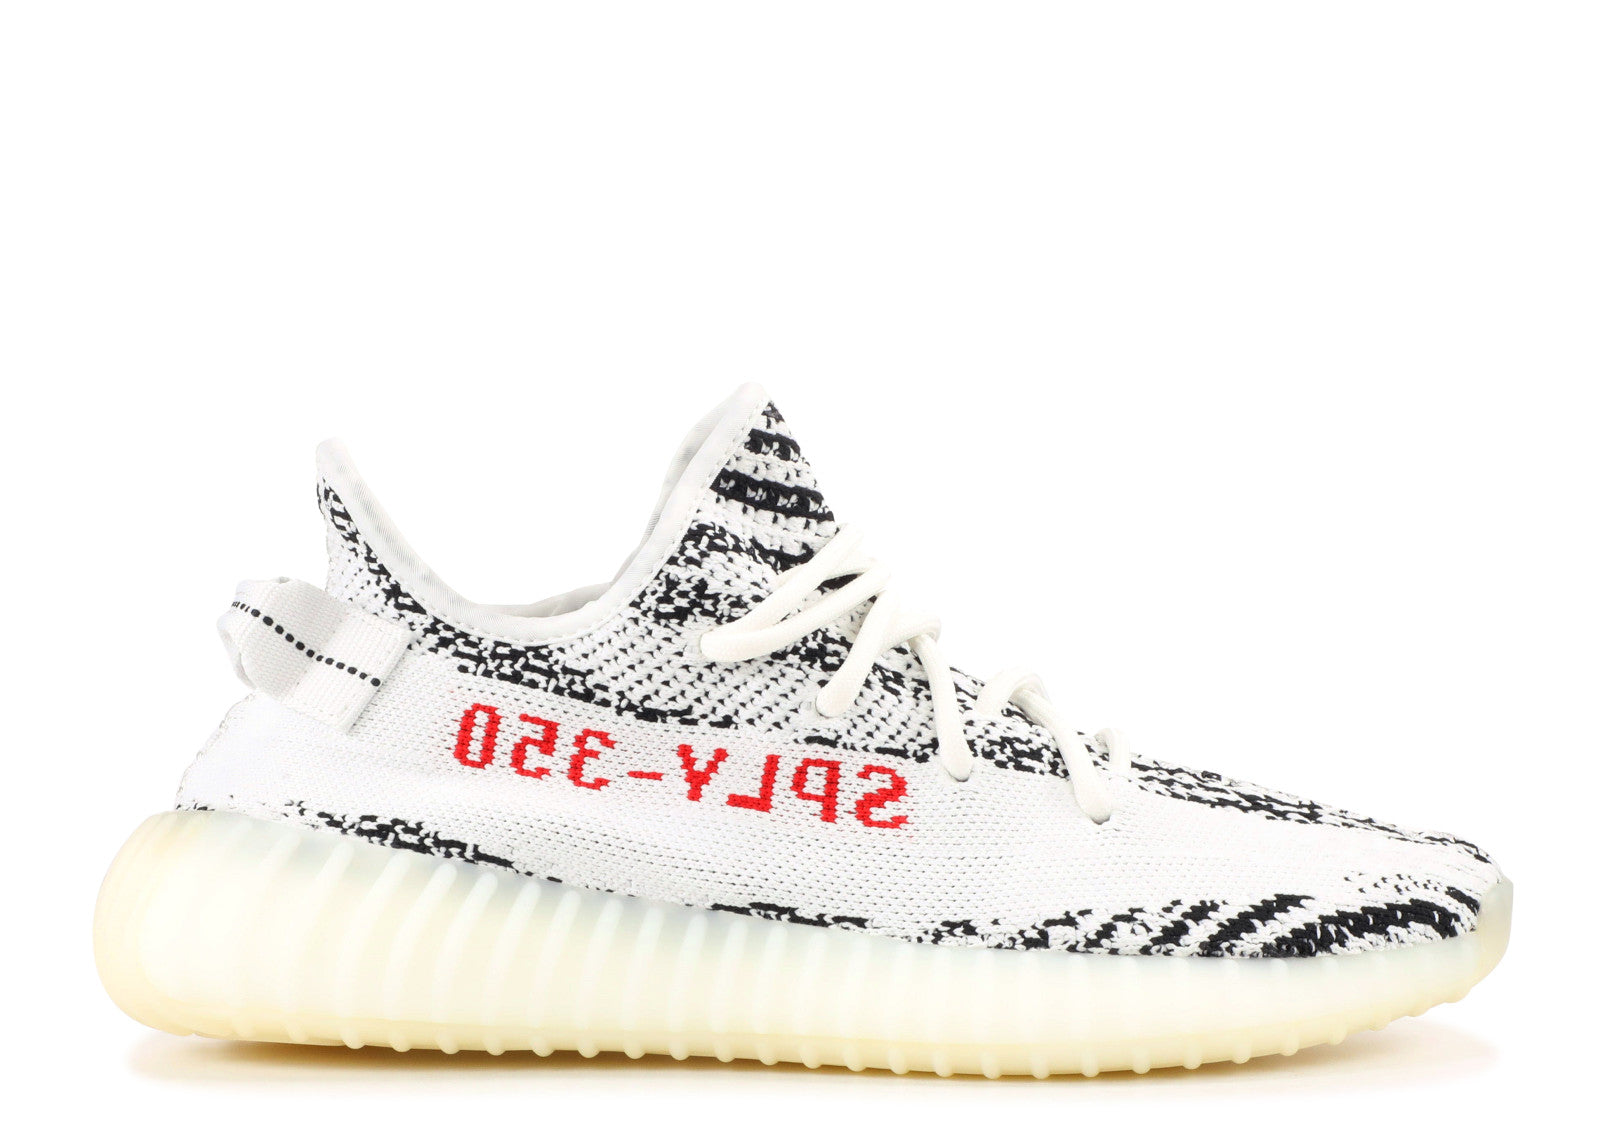 a6d892b7e Adidas Yeezy Boost 350 V2 Zebra – The Kingsfare